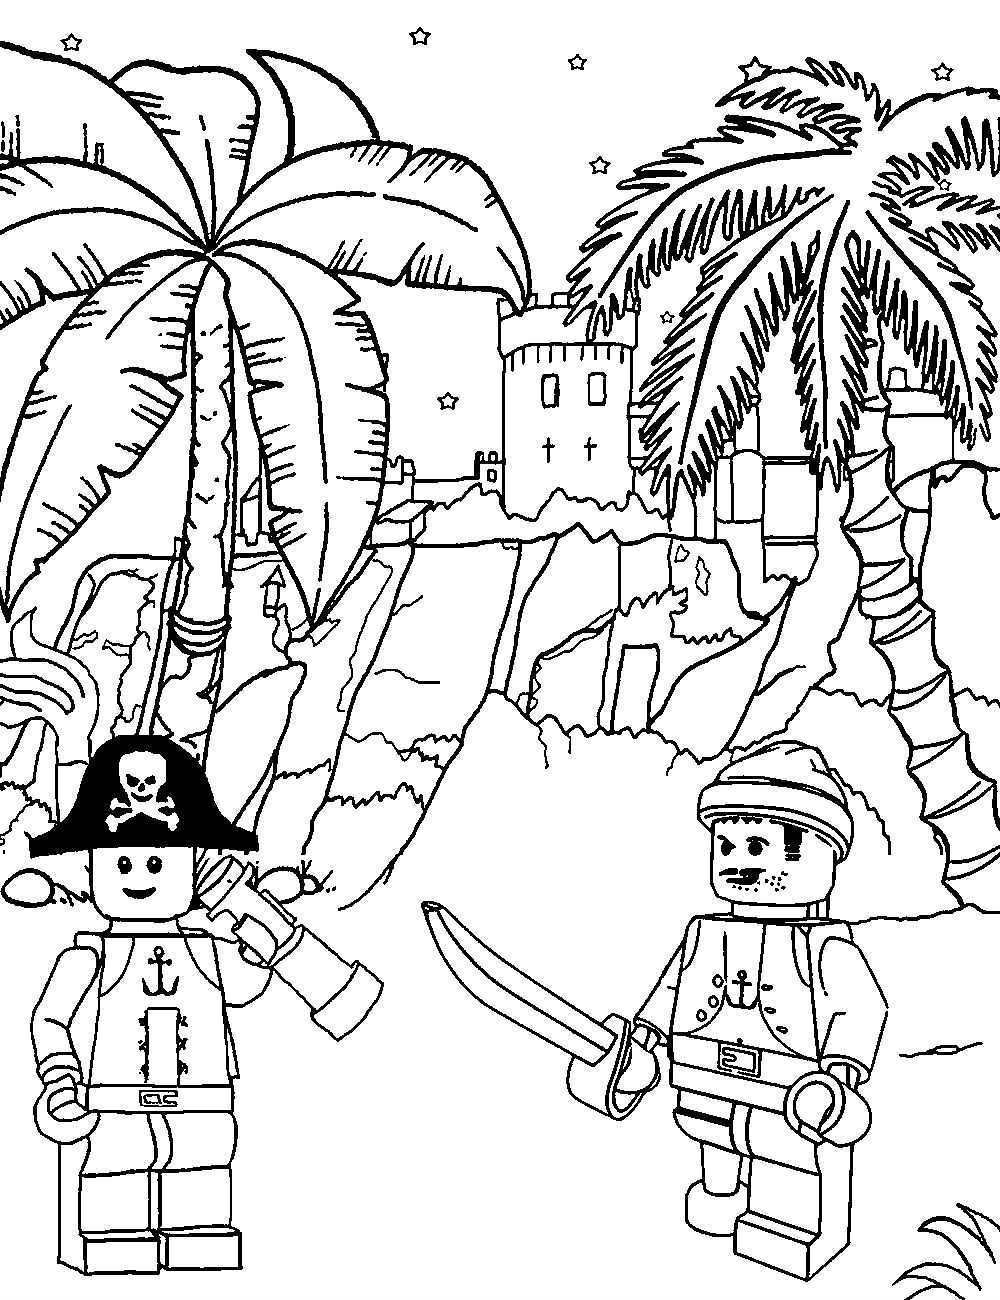 Pirates Toys Coloring Pages For Kids Gng Printable Pirates Coloring Pages For Kids Piratfest